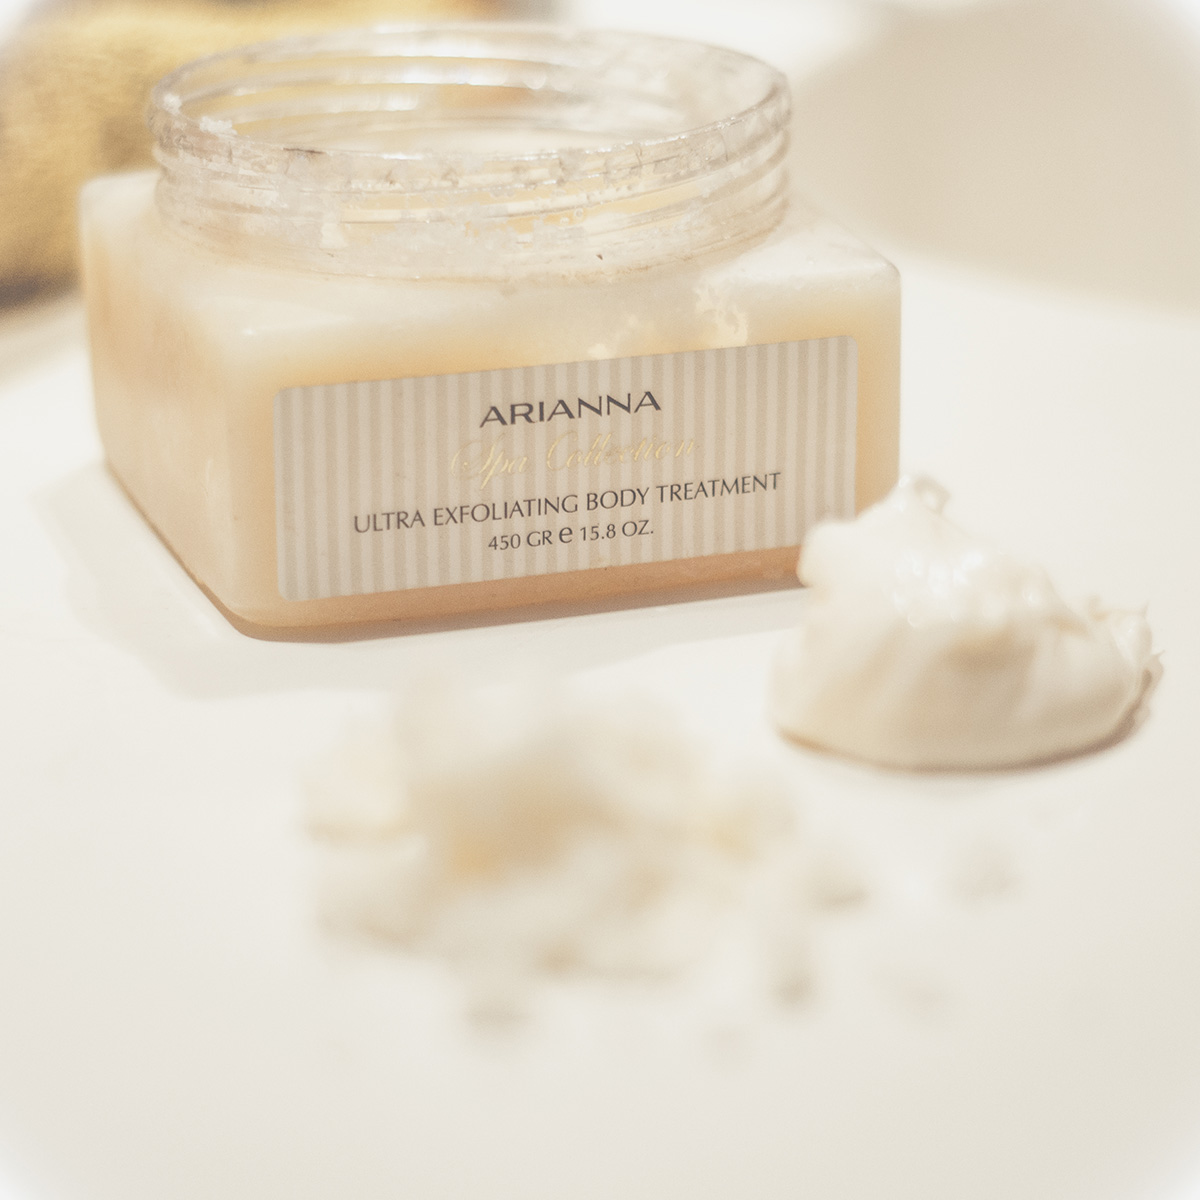 Arianna Ultra Exfoliating Body Treatment